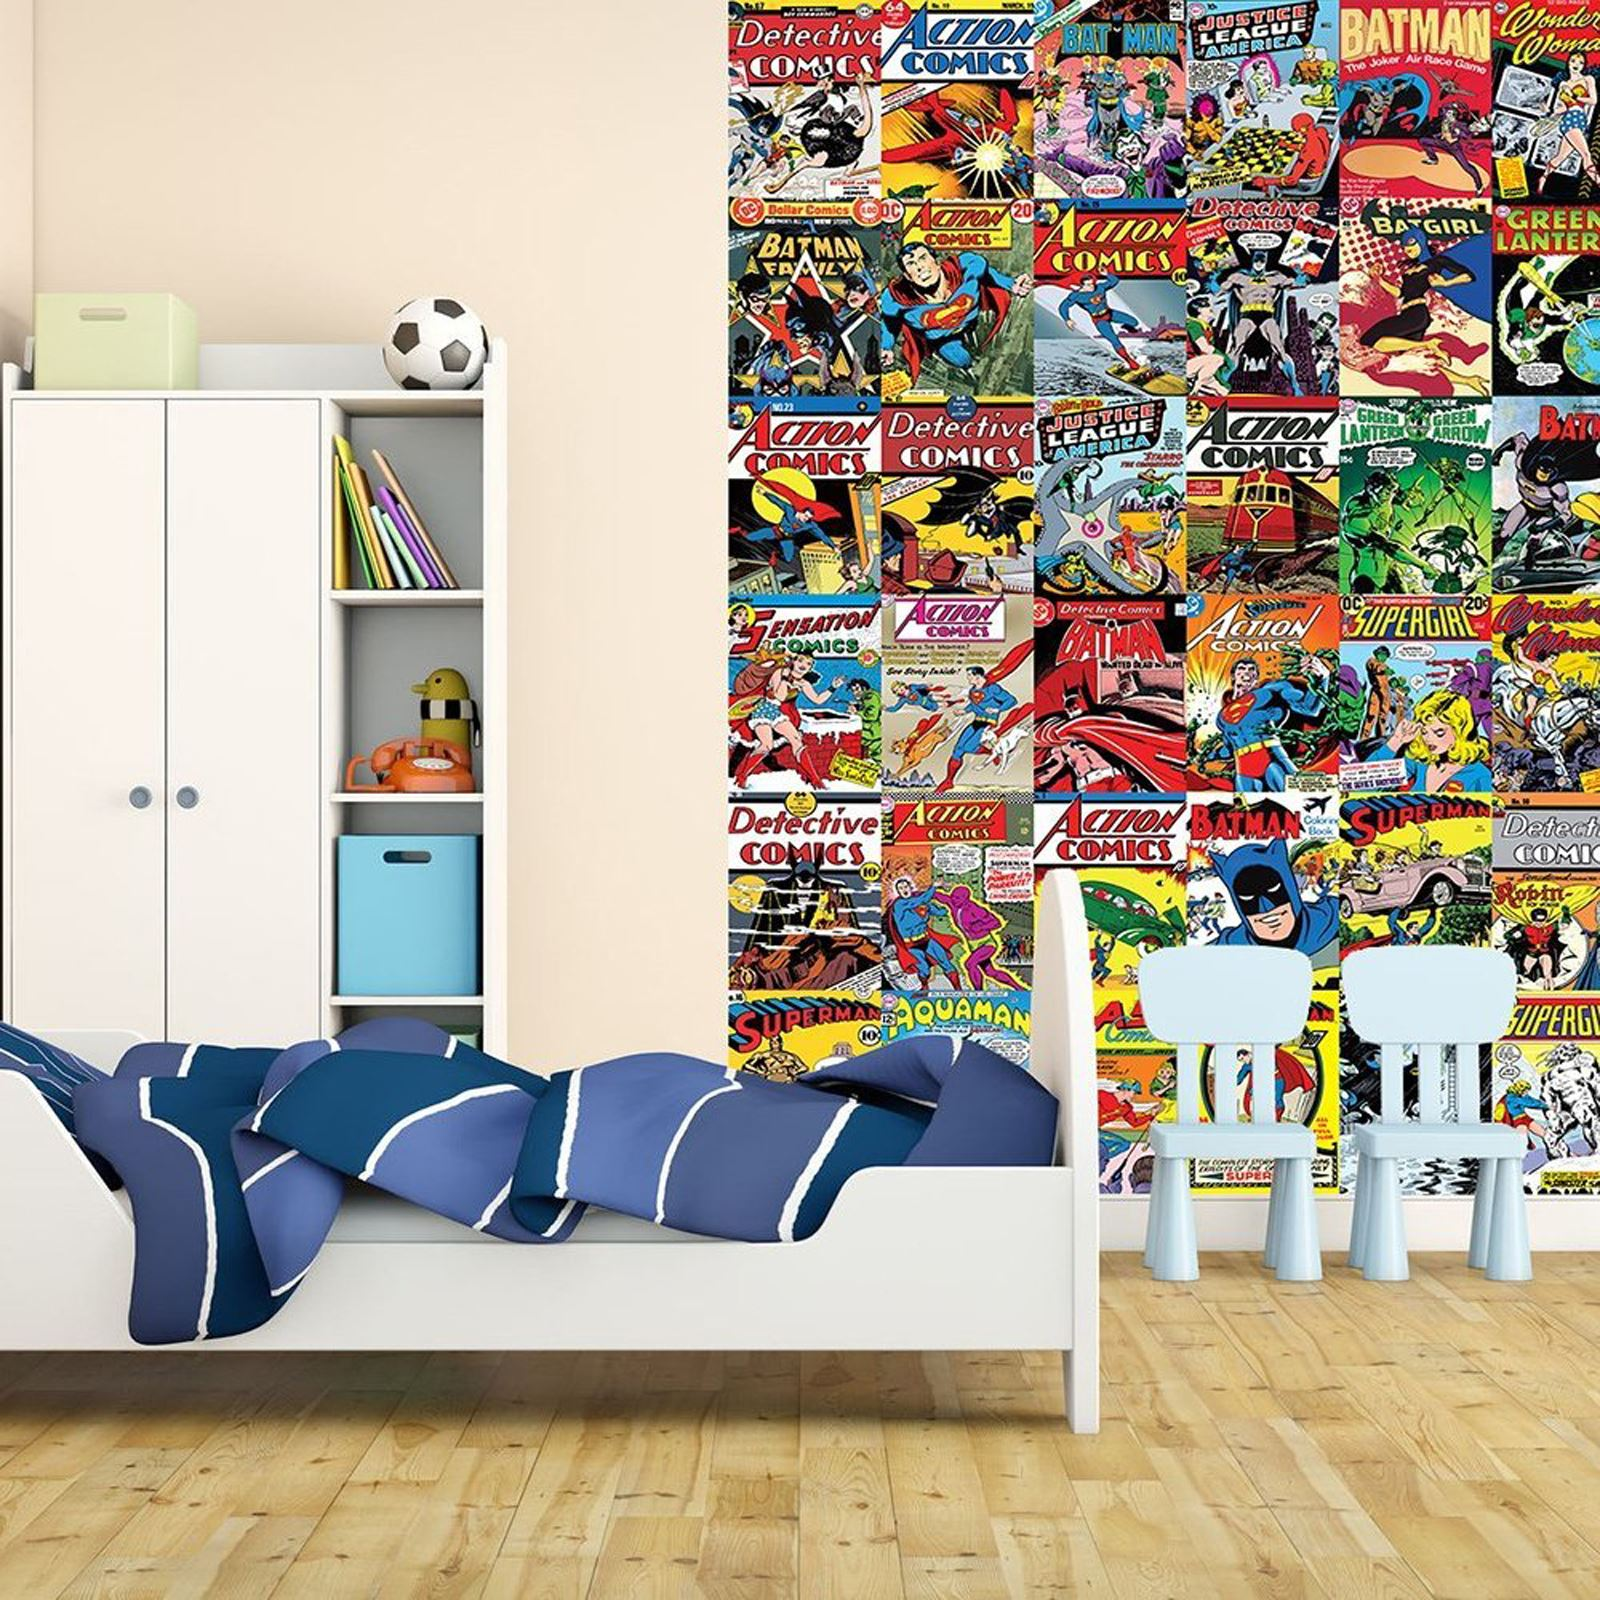 Bedroom Murals Uk: MARVEL COMICS AND AVENGERS WALLPAPER WALL MURALS DÉCOR